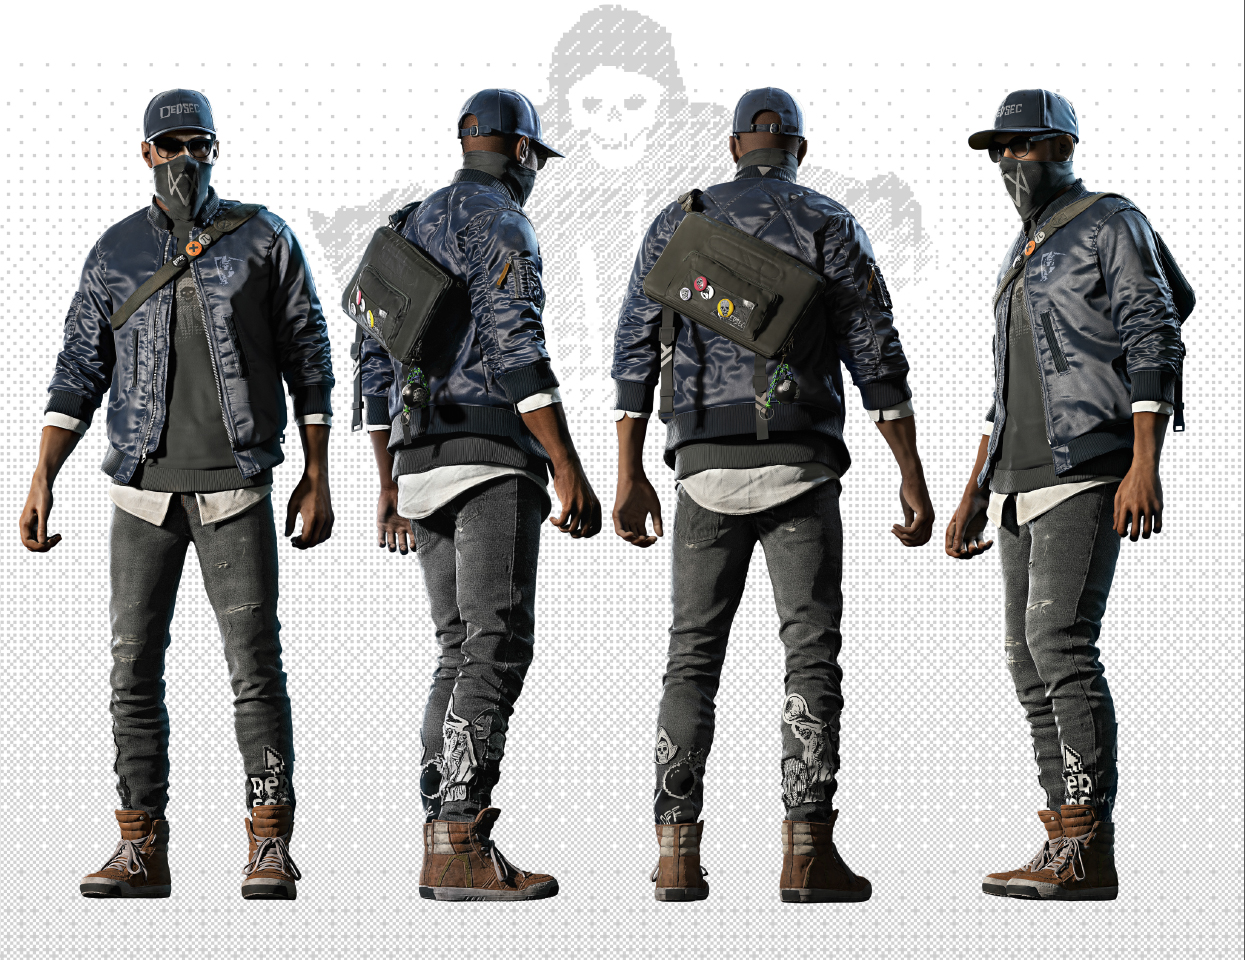 Watch Dogs 2watchdogs - Watch Dogs 2 Outfit , HD Wallpaper & Backgrounds